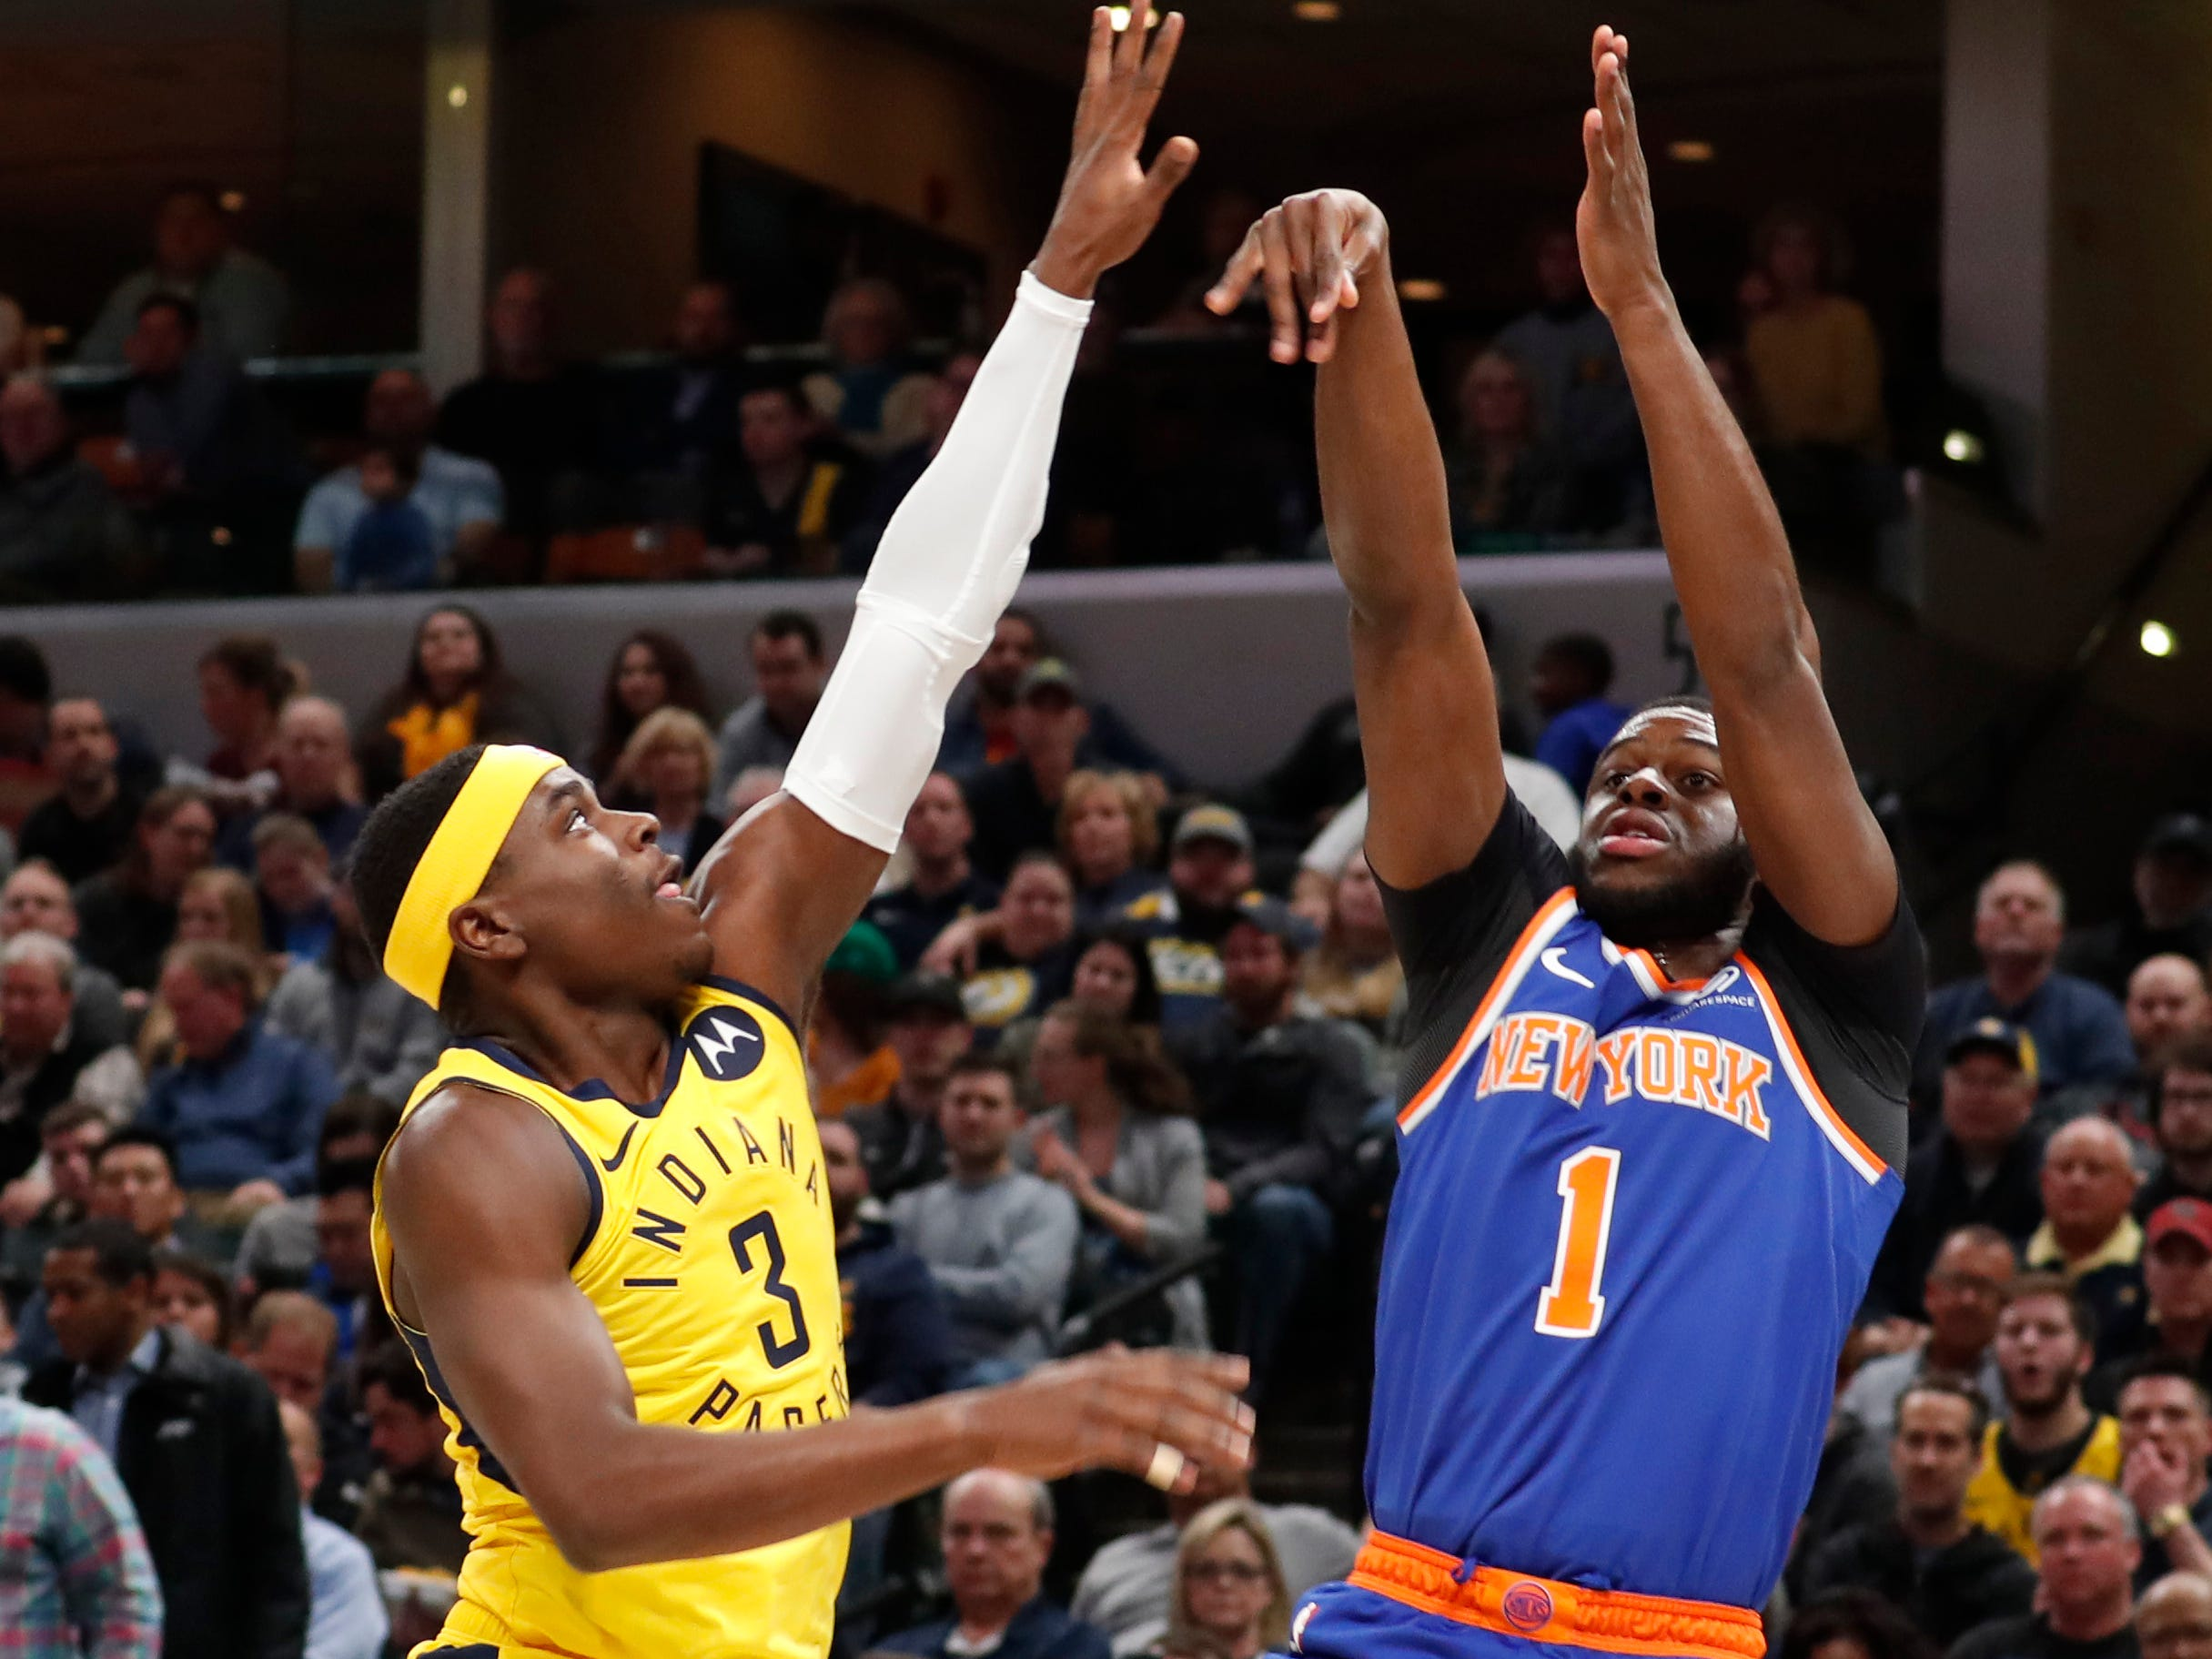 Mar 12, 2019; Indianapolis, IN, USA; New York Knicks guard Emmanuel Mudiay (1) takes a shot against Indiana Pacers guard Aaron Holiday (3) during the first quarter at Bankers Life Fieldhouse.